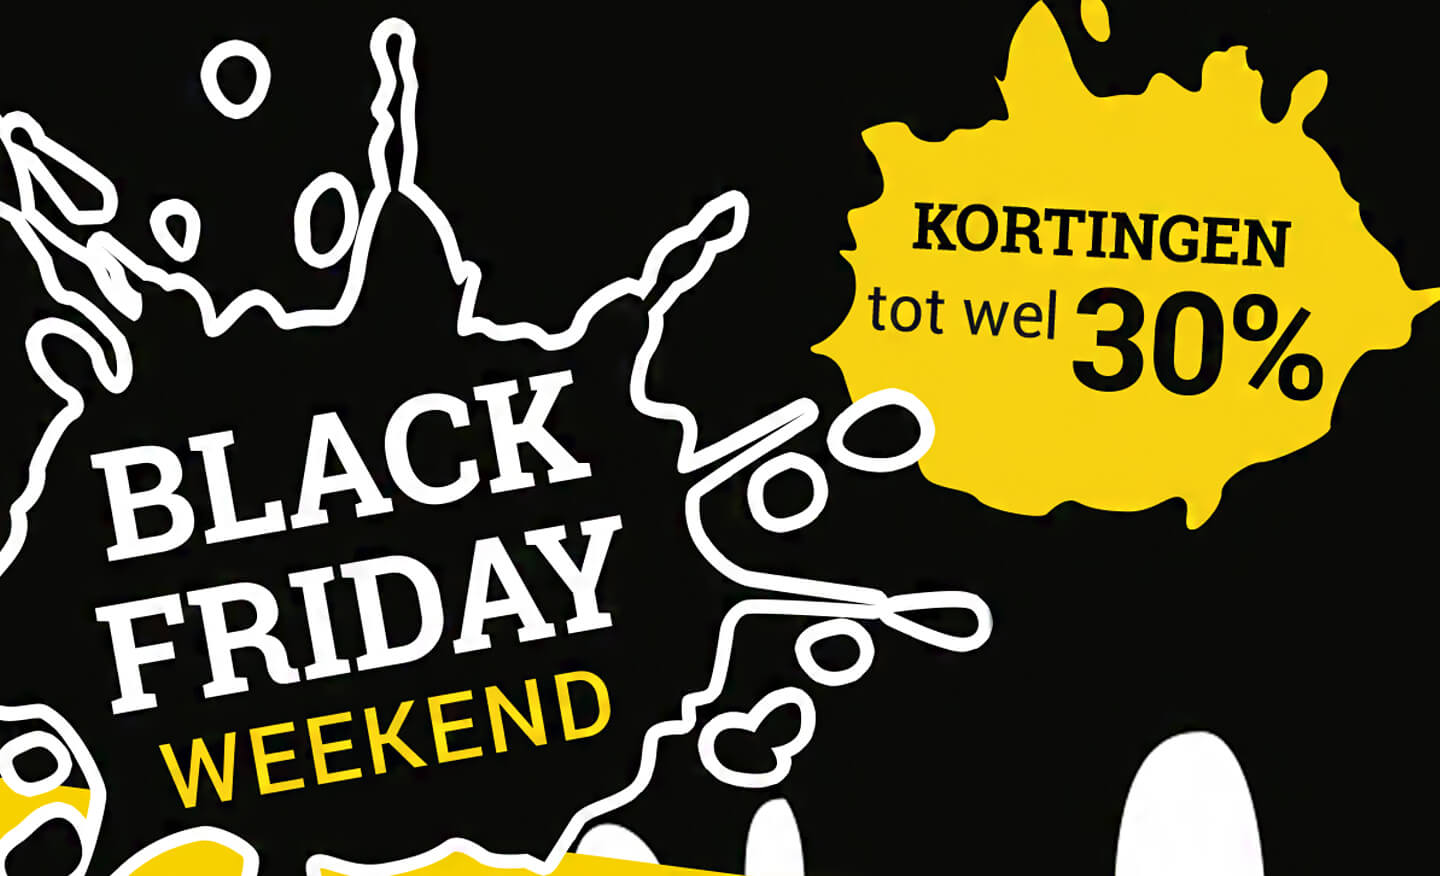 Www Black Friday Black Friday Weekend Deals Bij Bcc Letsgodigital